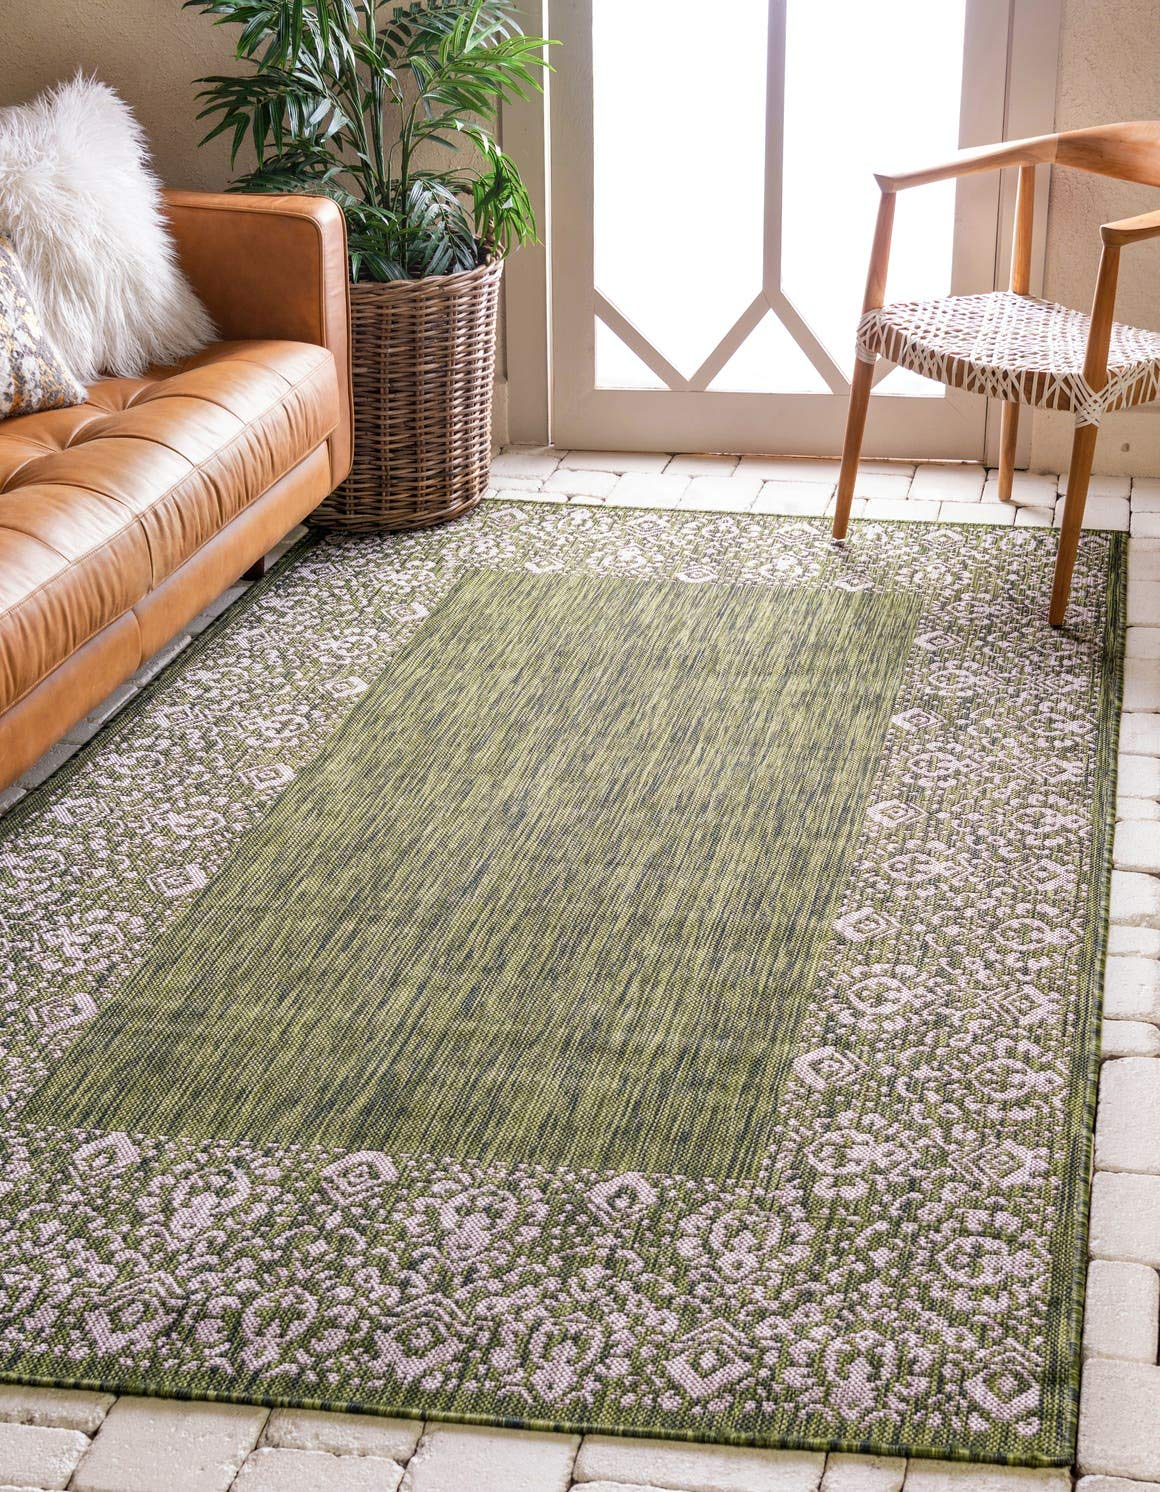 Unique Loom Outdoor Border Collection Traditional Floral Border Transitional Indoor and Outdoor Flatweave Green Area Rug 4 0 x 6 0